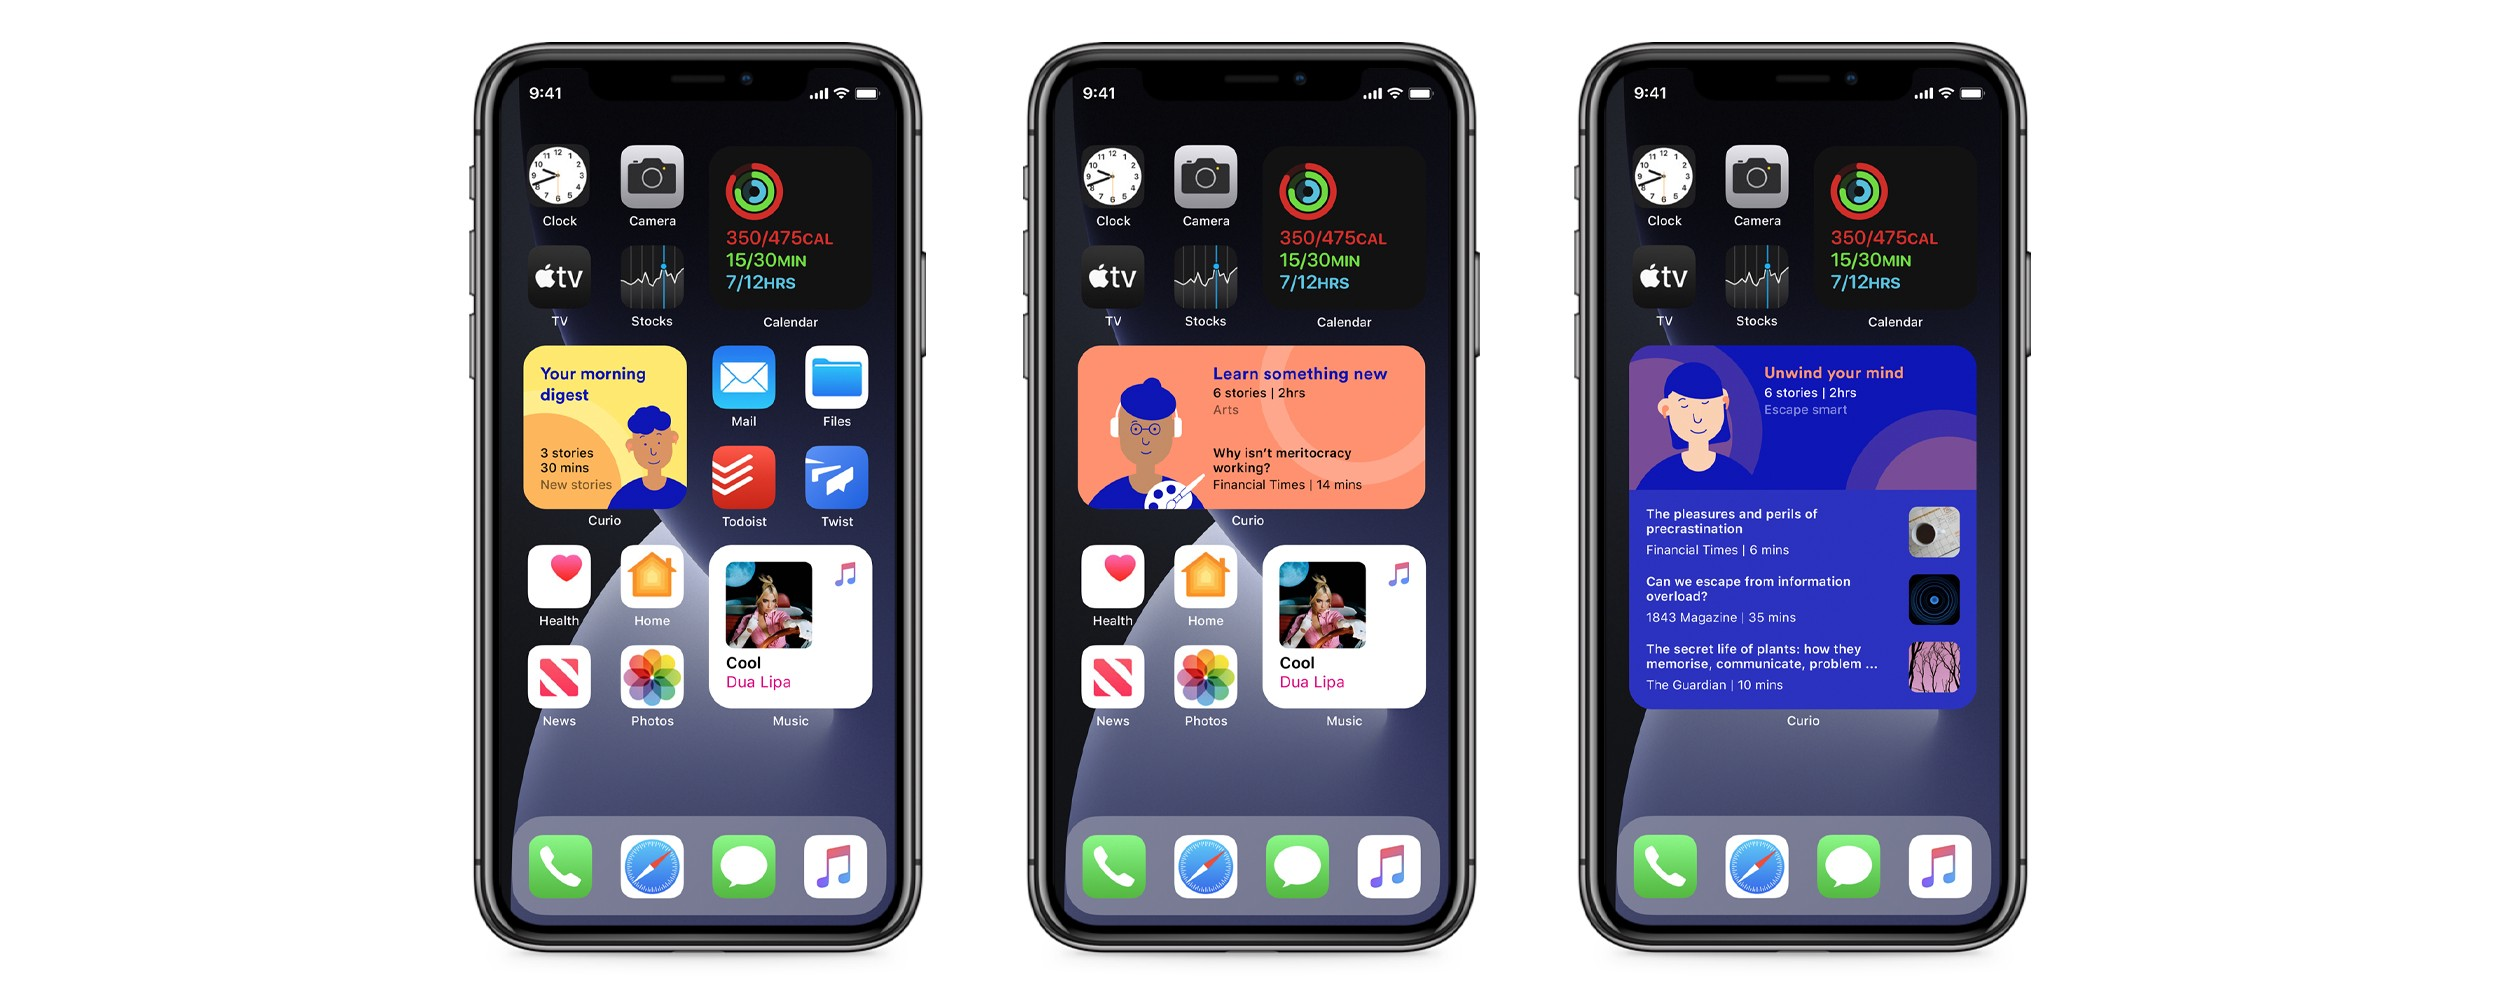 Three phone screens showing different sizes of the Curio widget